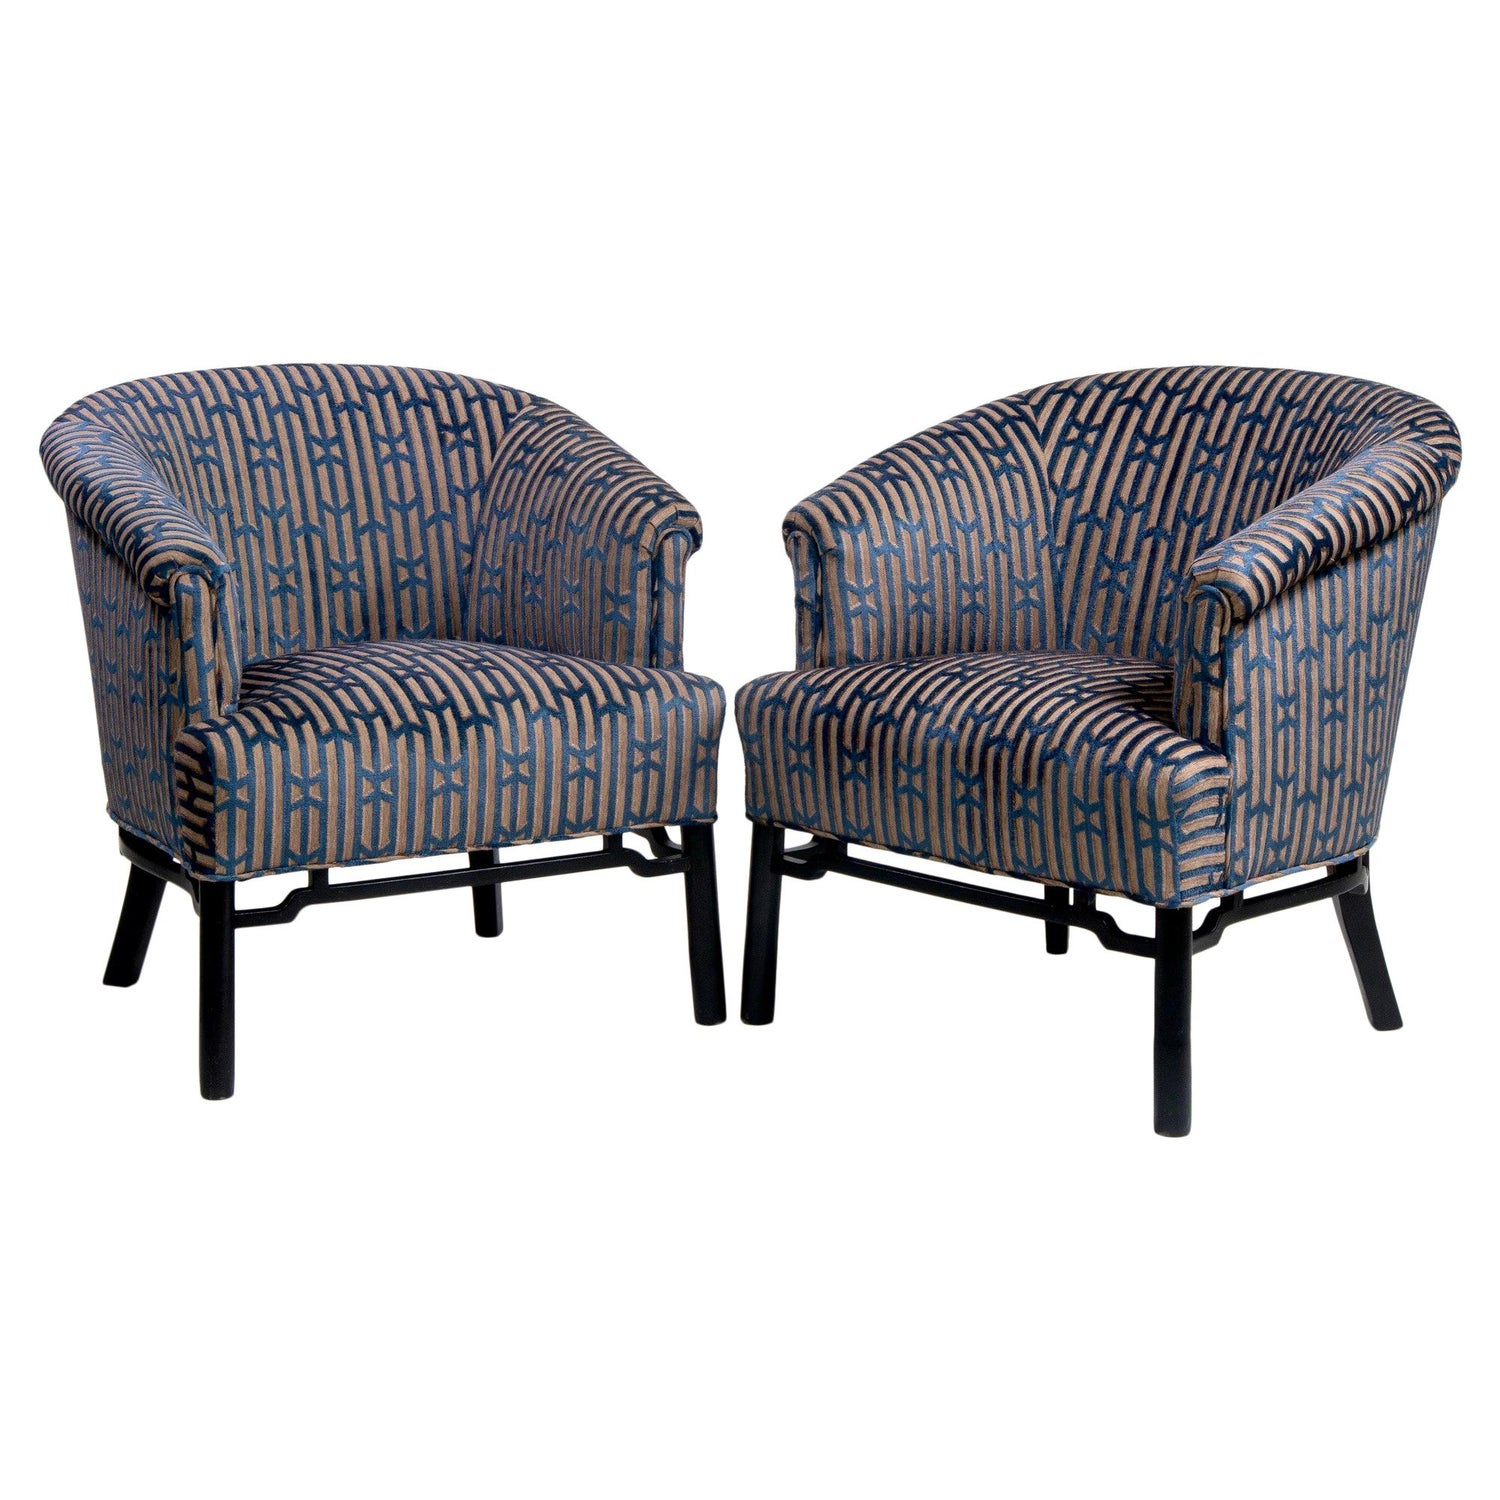 Magnificent Baker Furniture Company Club Chairs 24 For Sale At 1Stdibs Ibusinesslaw Wood Chair Design Ideas Ibusinesslaworg